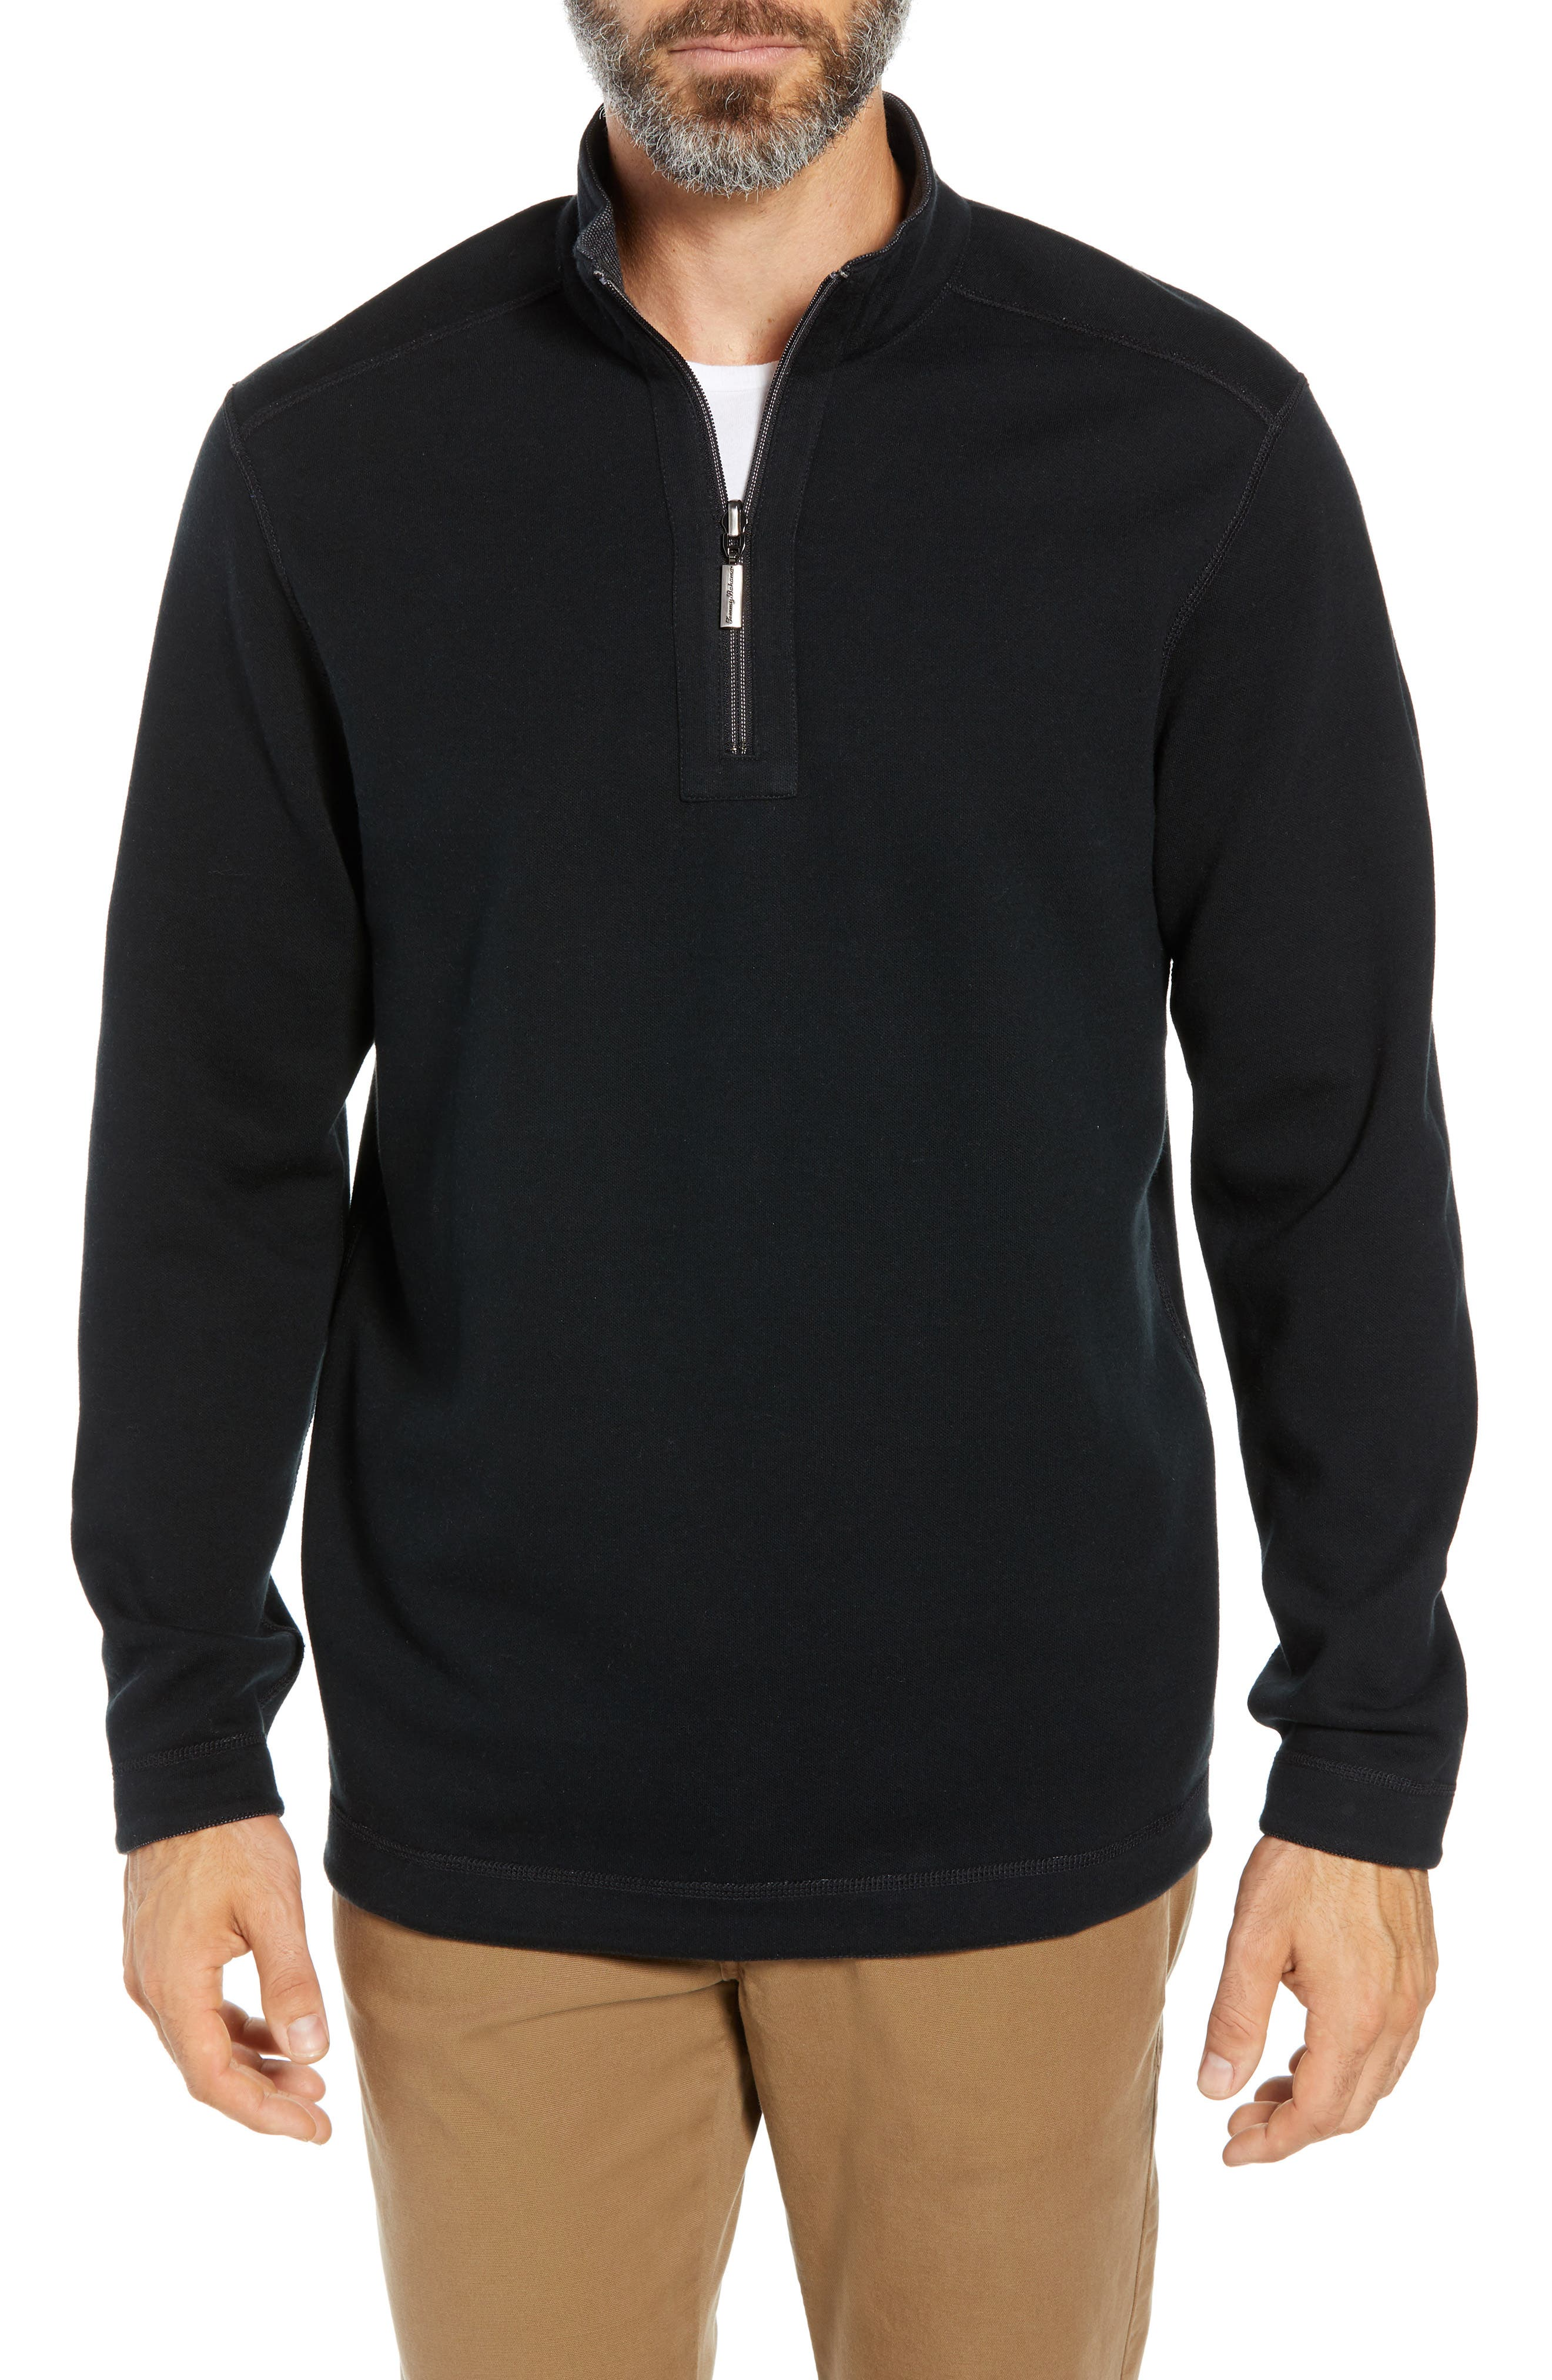 Playa Port Flip Quarter Zip Pullover,                             Alternate thumbnail 2, color,                             001